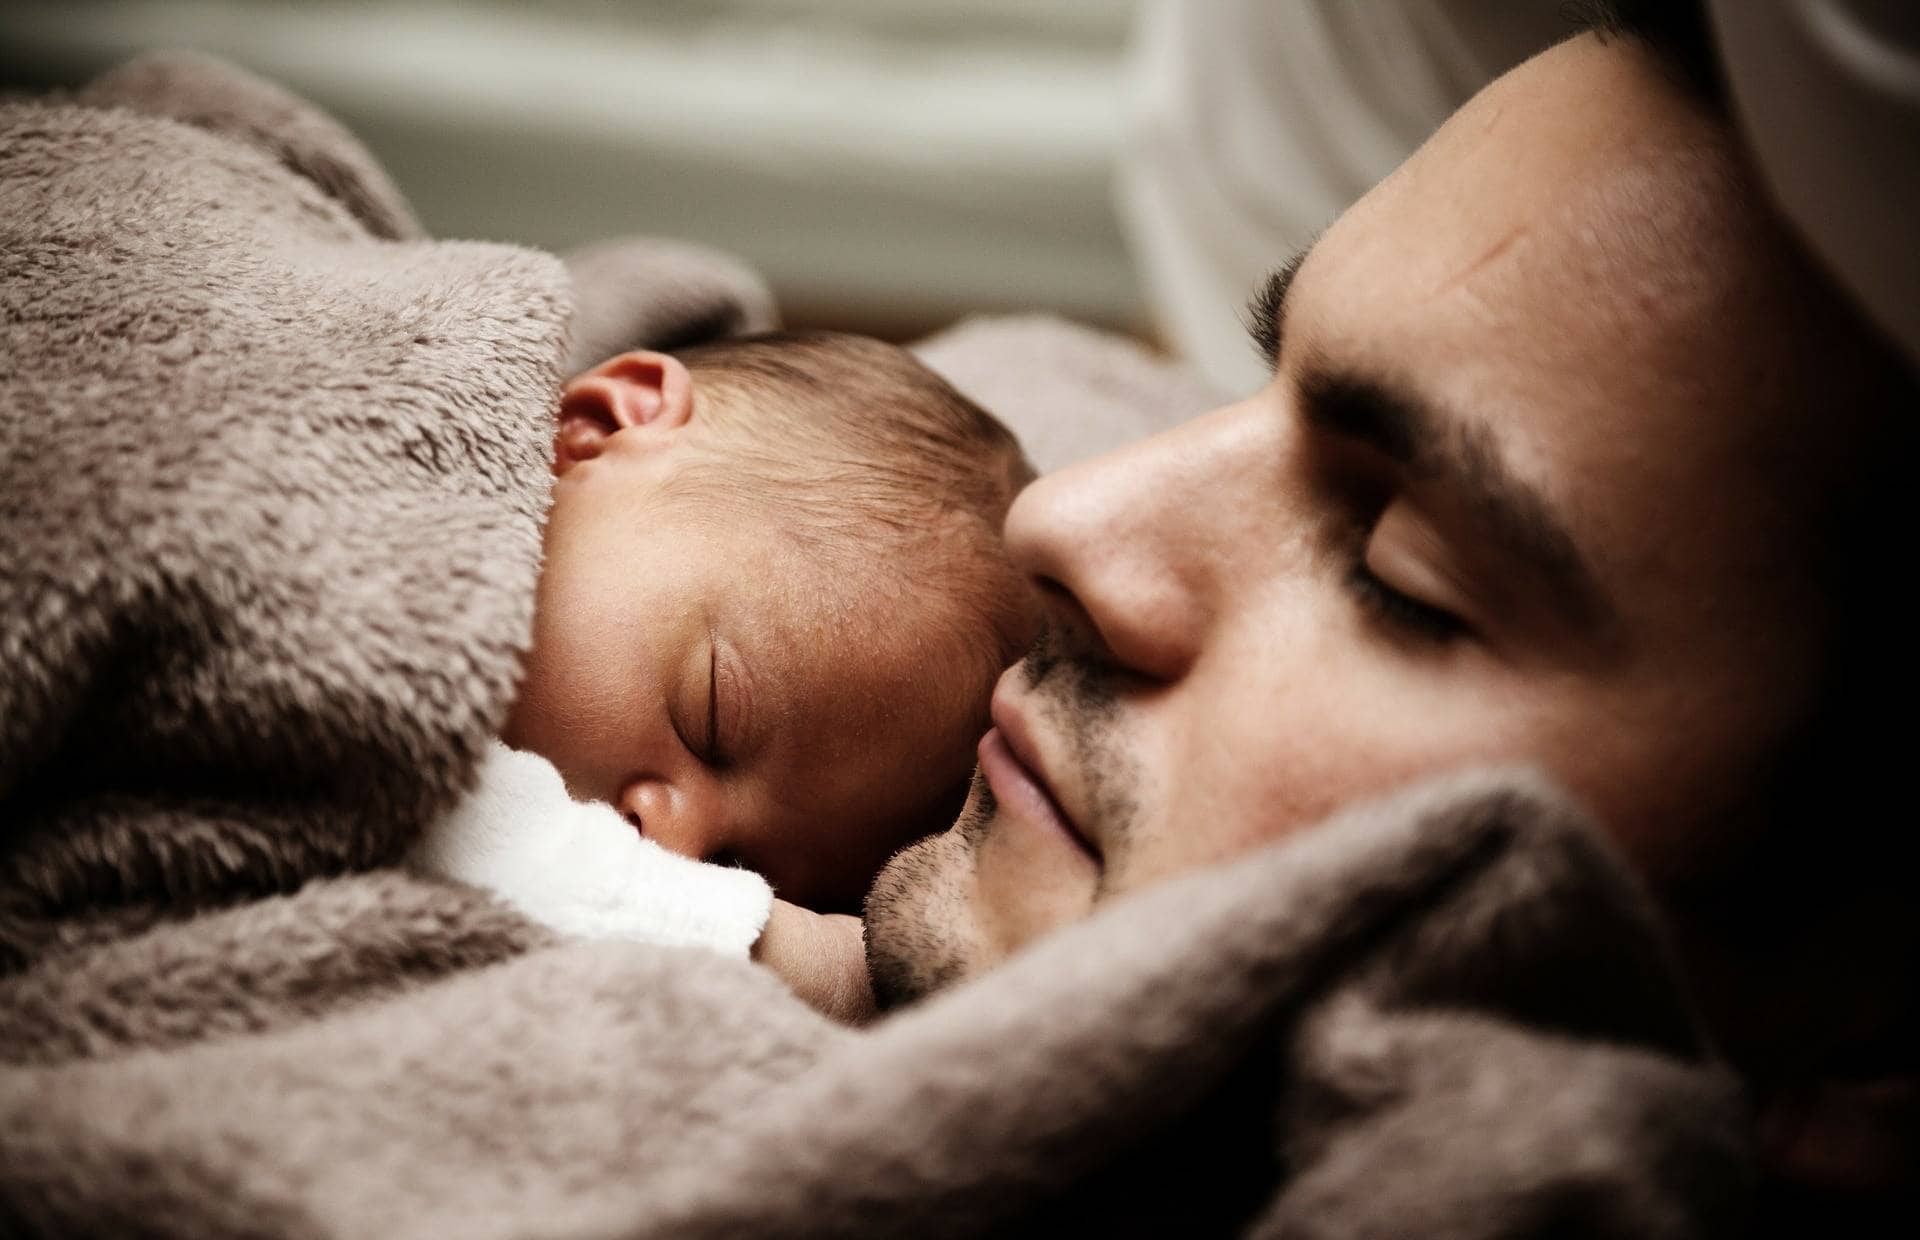 Men Can Also Suffer from Postpartum Depression